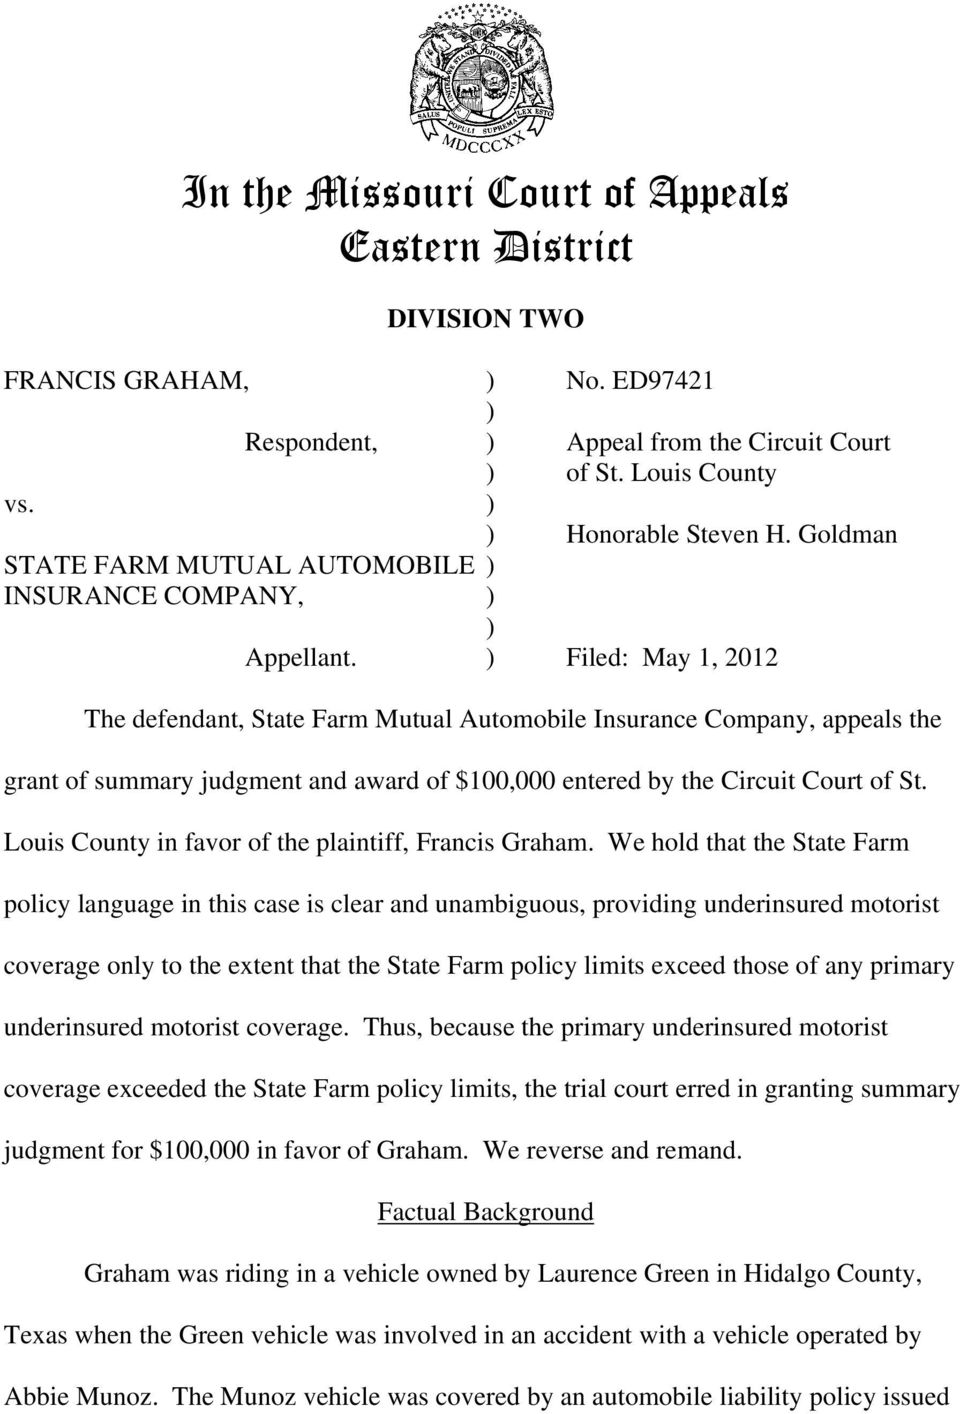 ) Filed: May 1, 2012 The defendant, State Farm Mutual Automobile Insurance Company, appeals the grant of summary judgment and award of $100,000 entered by the Circuit Court of St.